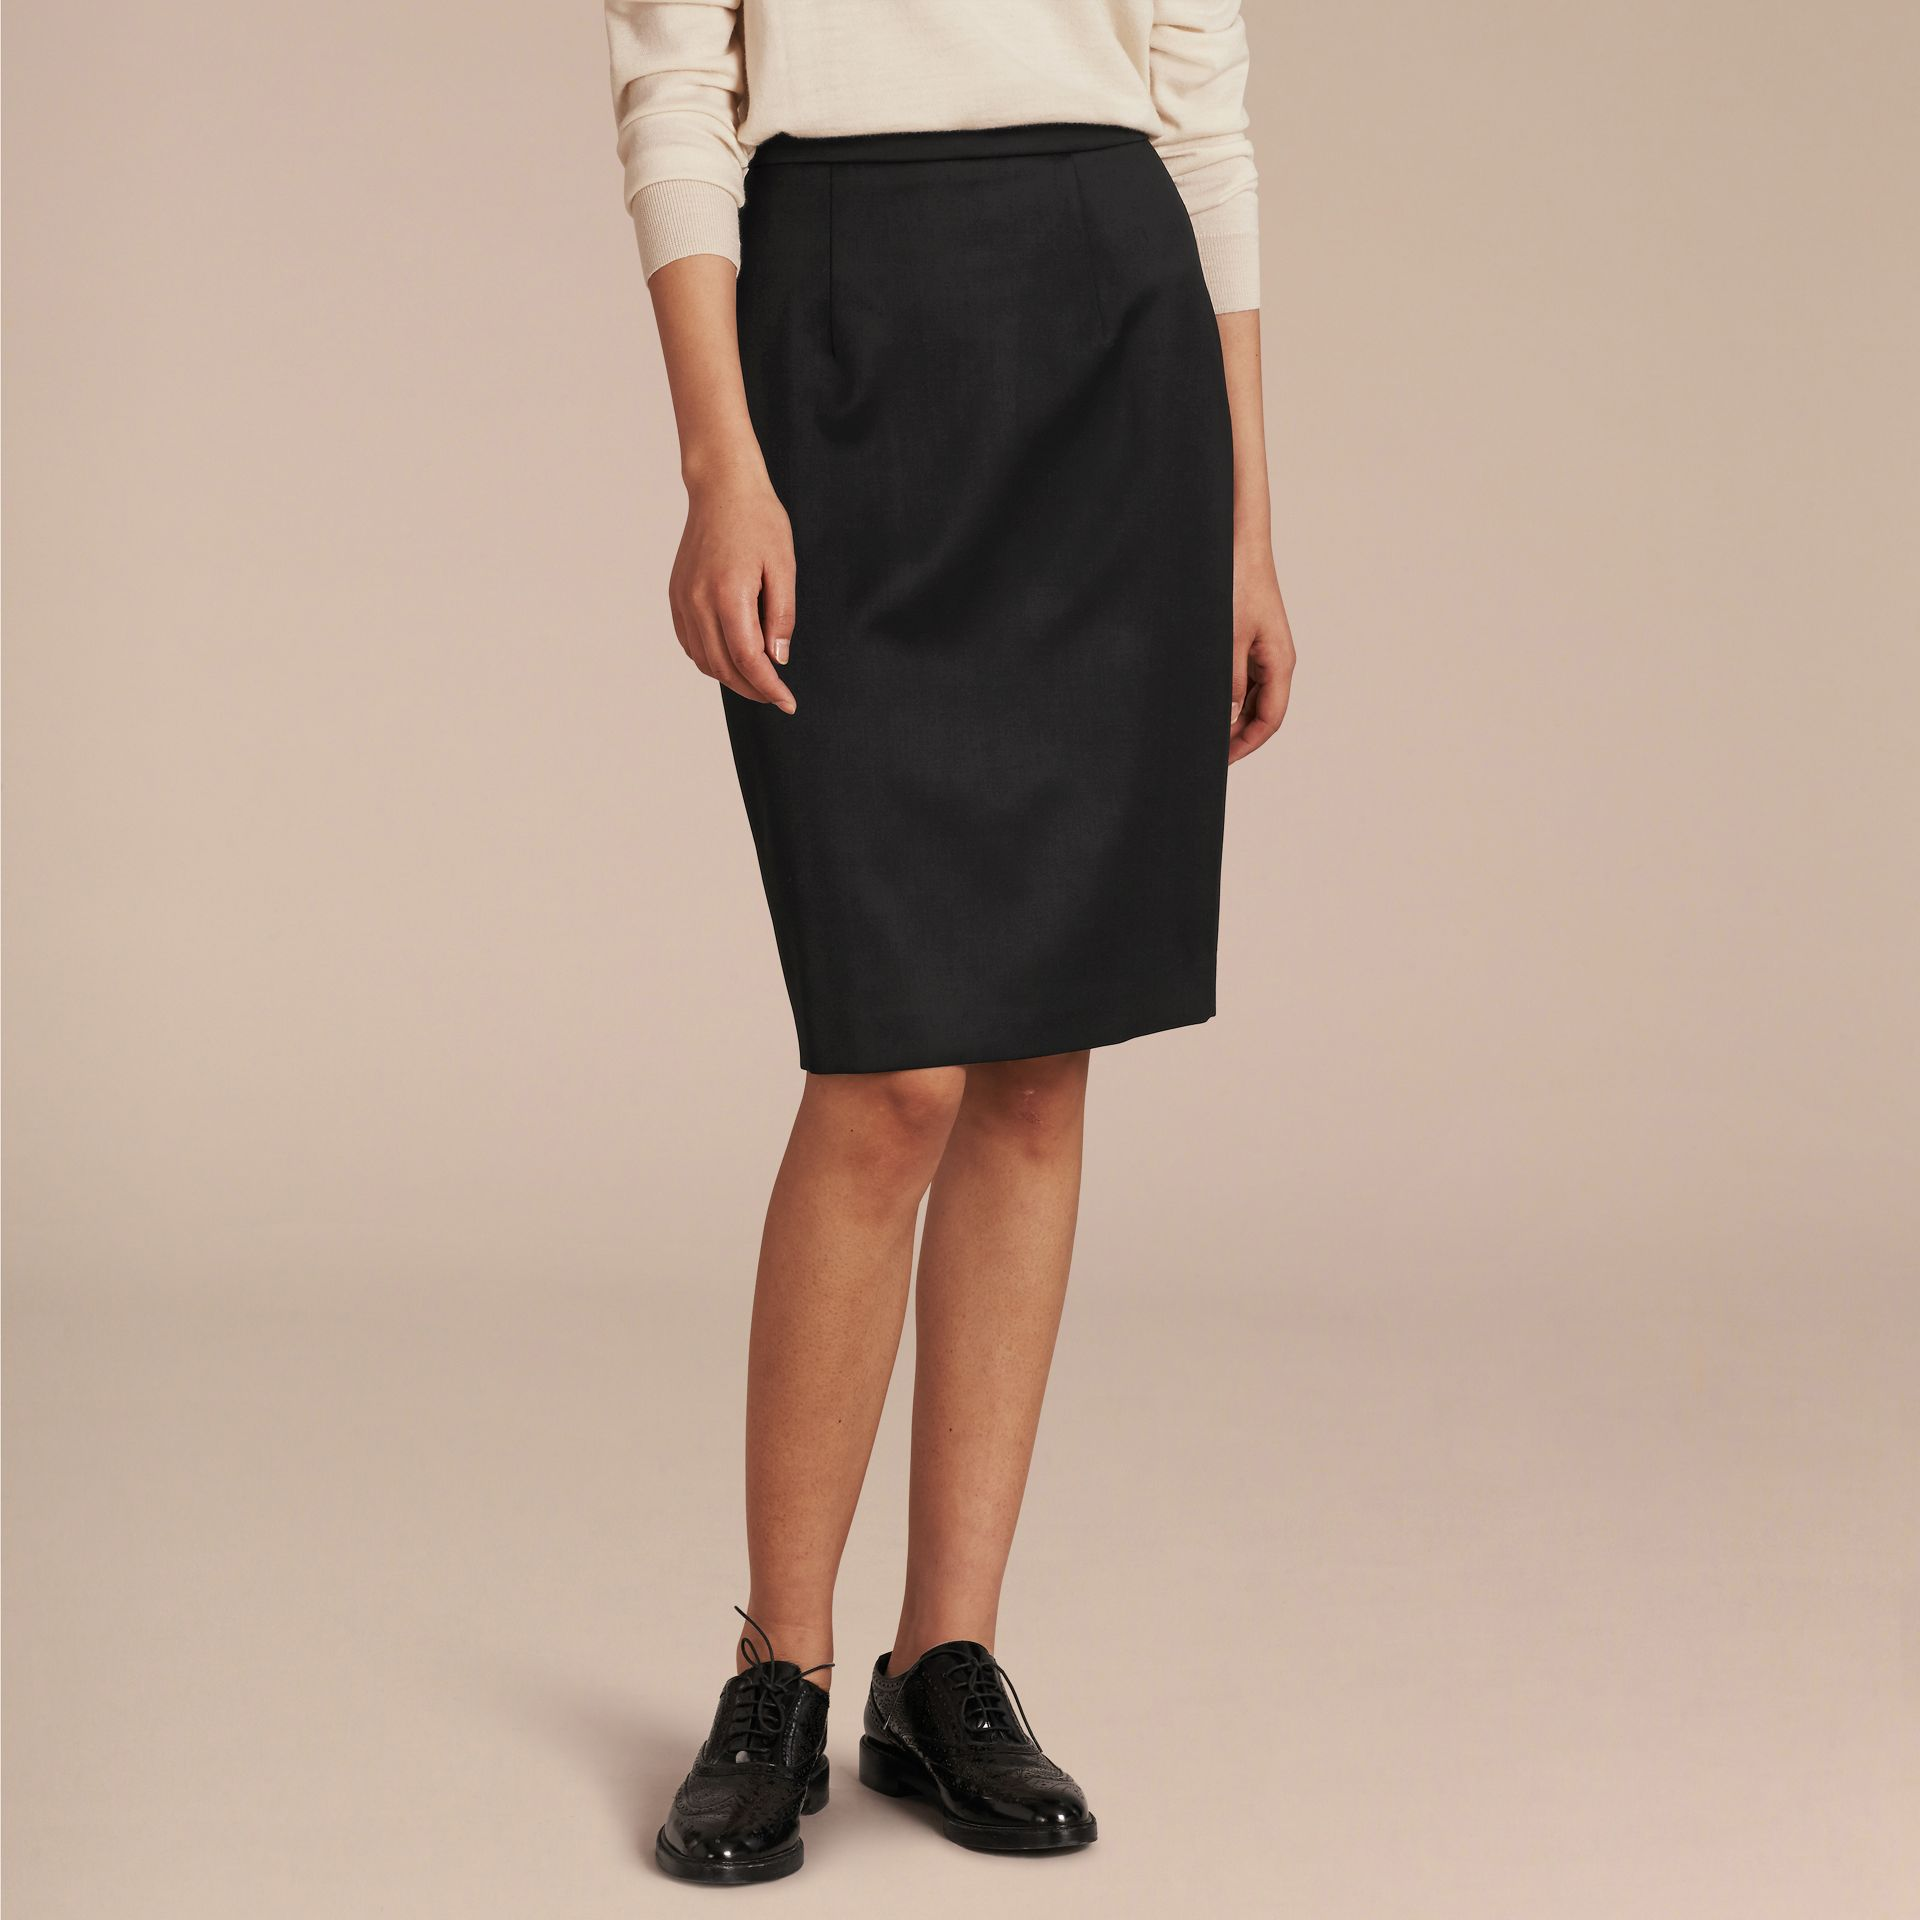 Black Stretch Virgin Wool Tailored Pencil Skirt Black - gallery image 6